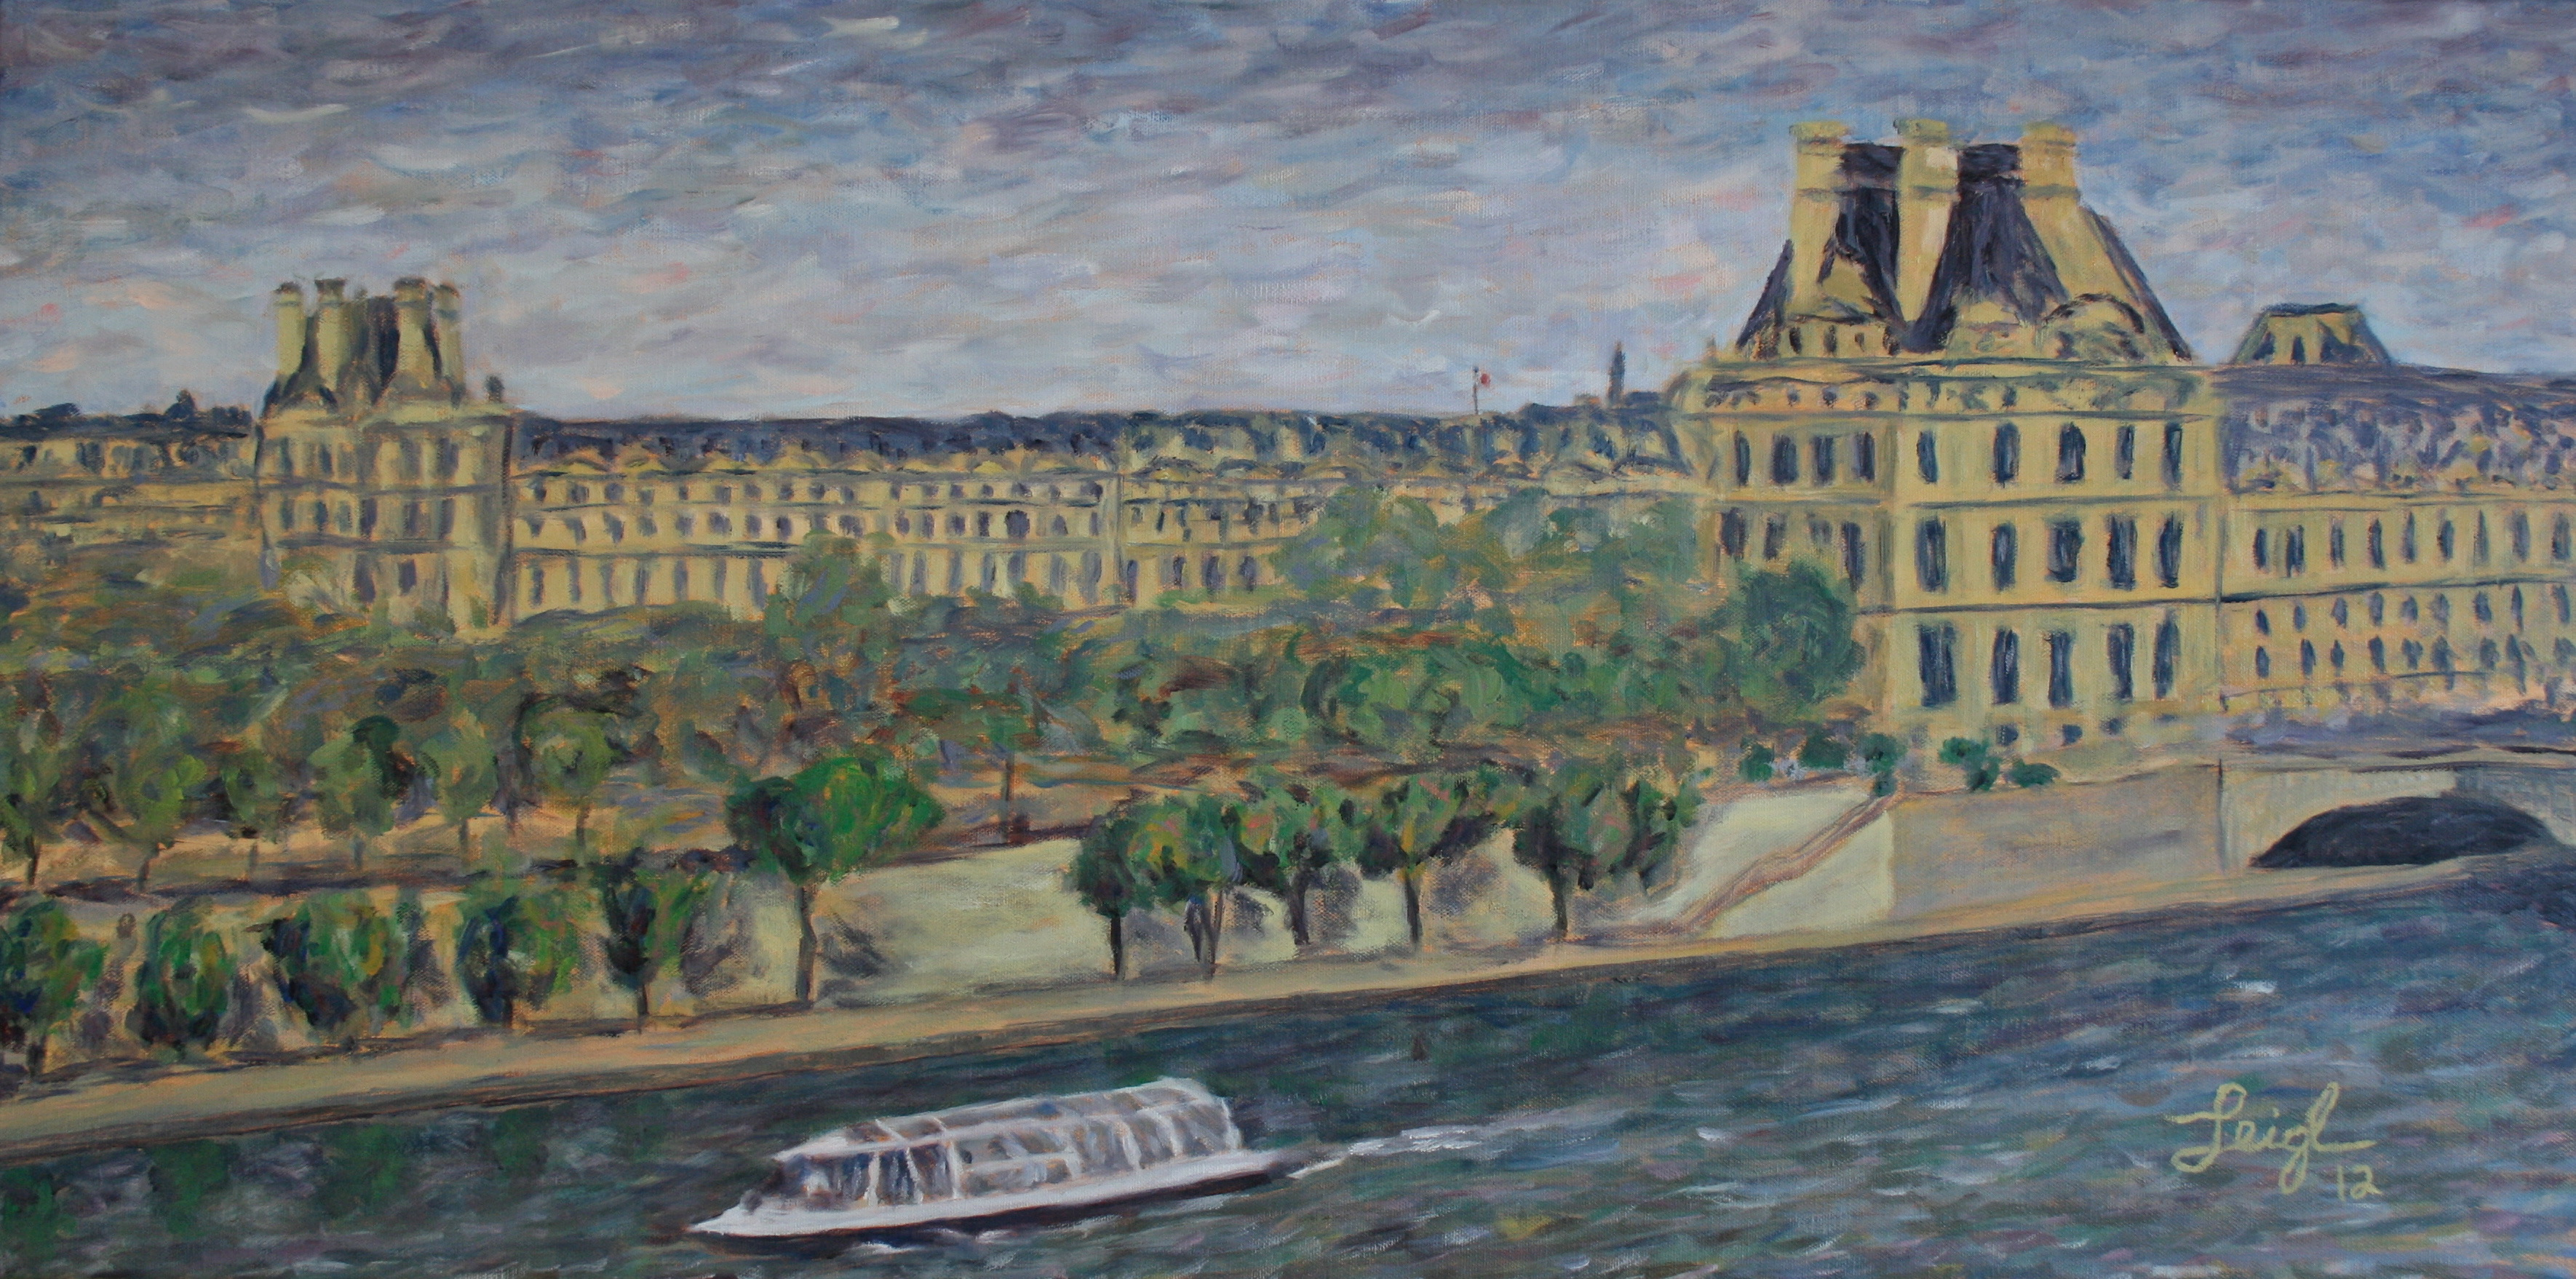 Louvre and Seine from the d'Orsay  ~   Sue & Bill Johnston, San Diego, CA  2012 • 36 x 18